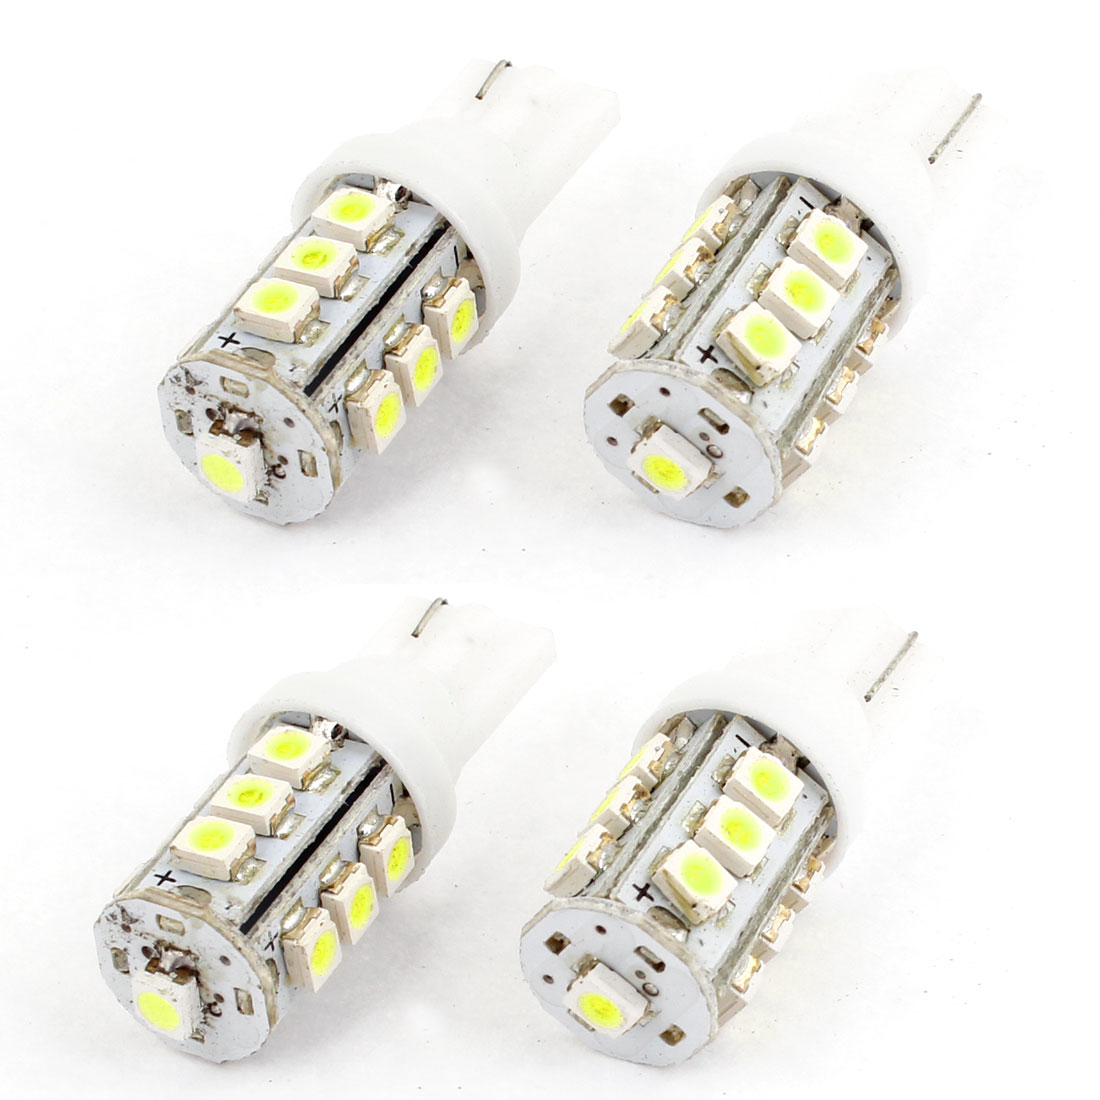 4 x T10 13 1210 3528 LED SMD Dash Instrument Light Bulb White for Auto